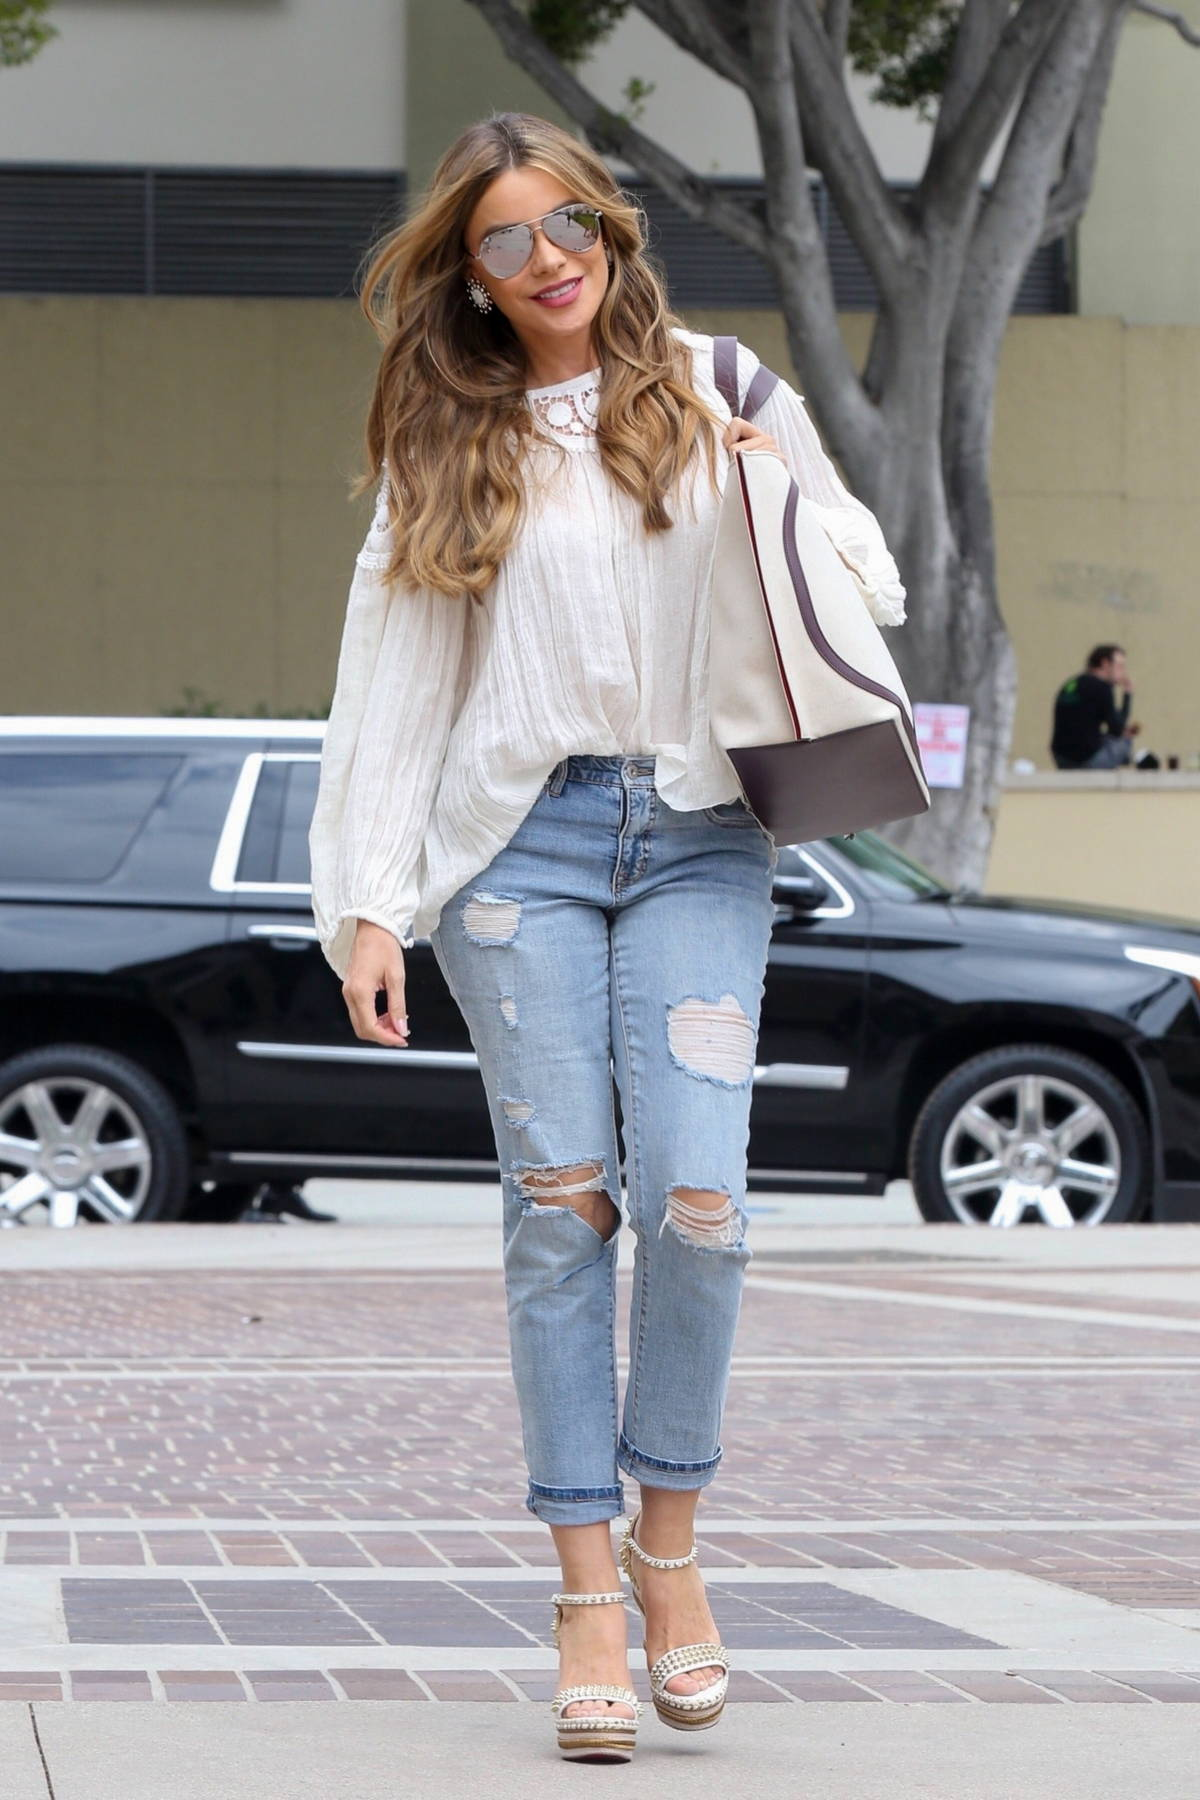 Sofia Vergara wears a white top and jeans as she arrives at a taping for AGT in Los Angeles